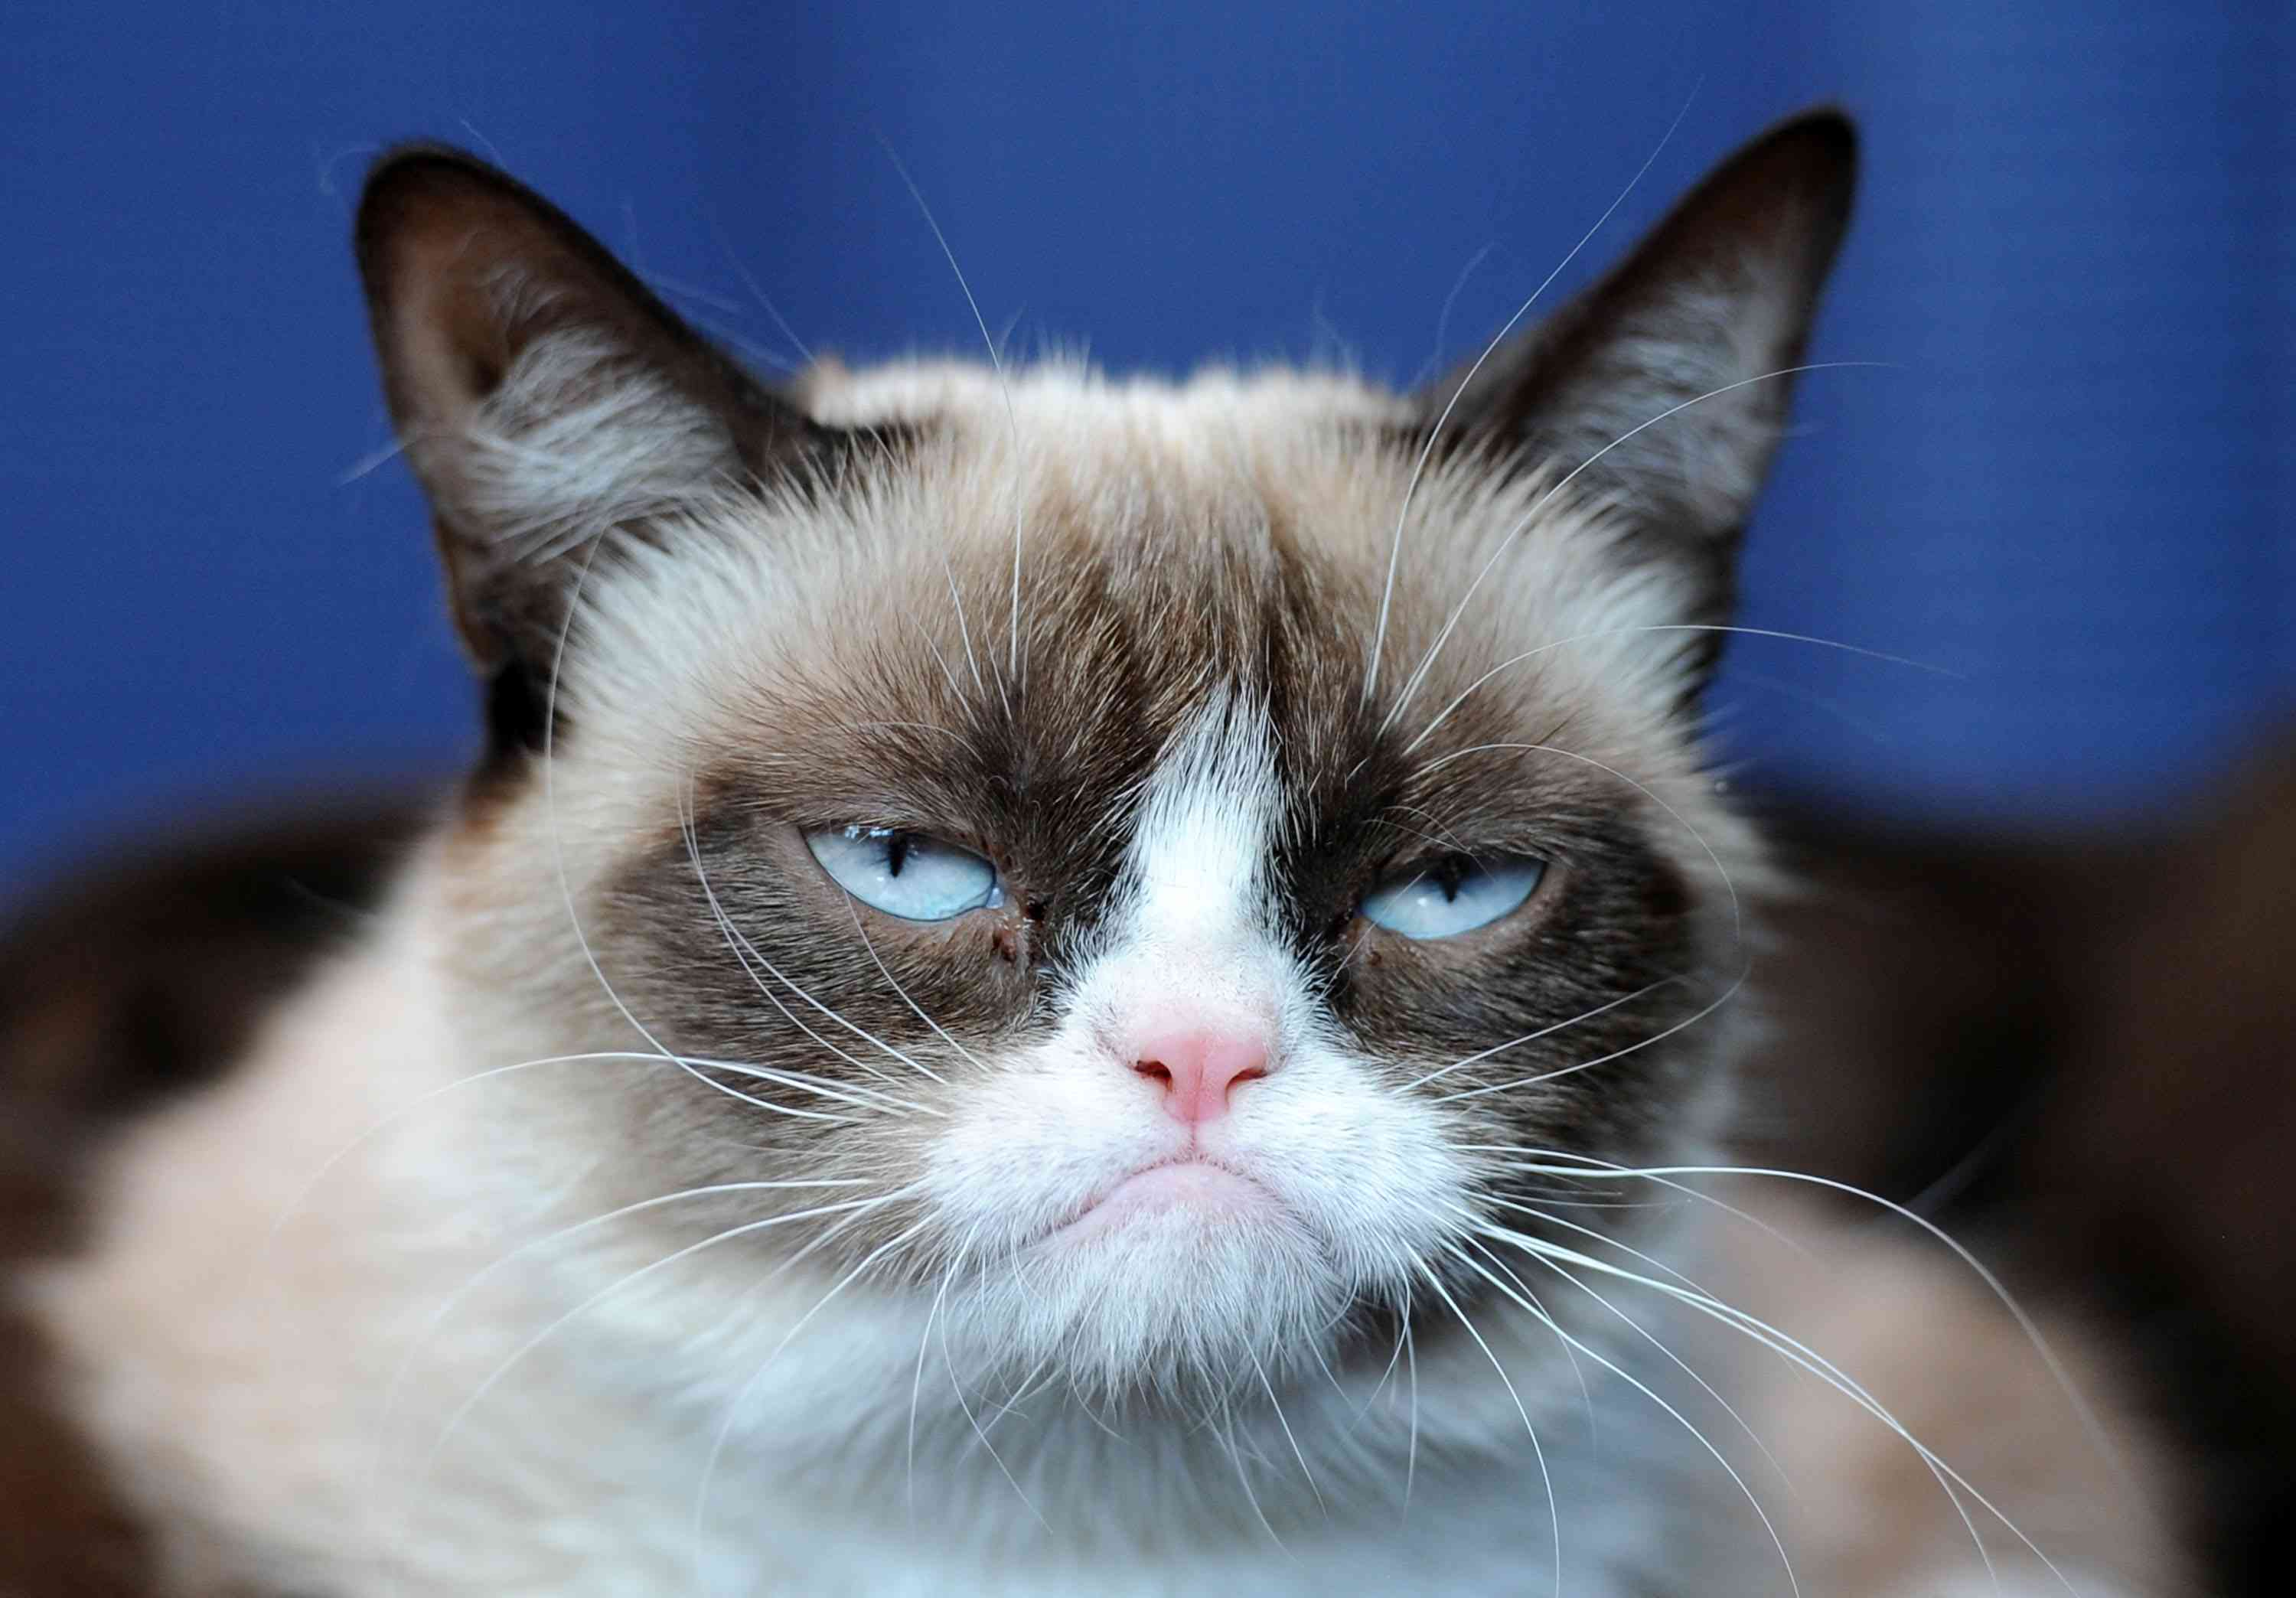 frontal headshot of scowling grumpy cat on blue background